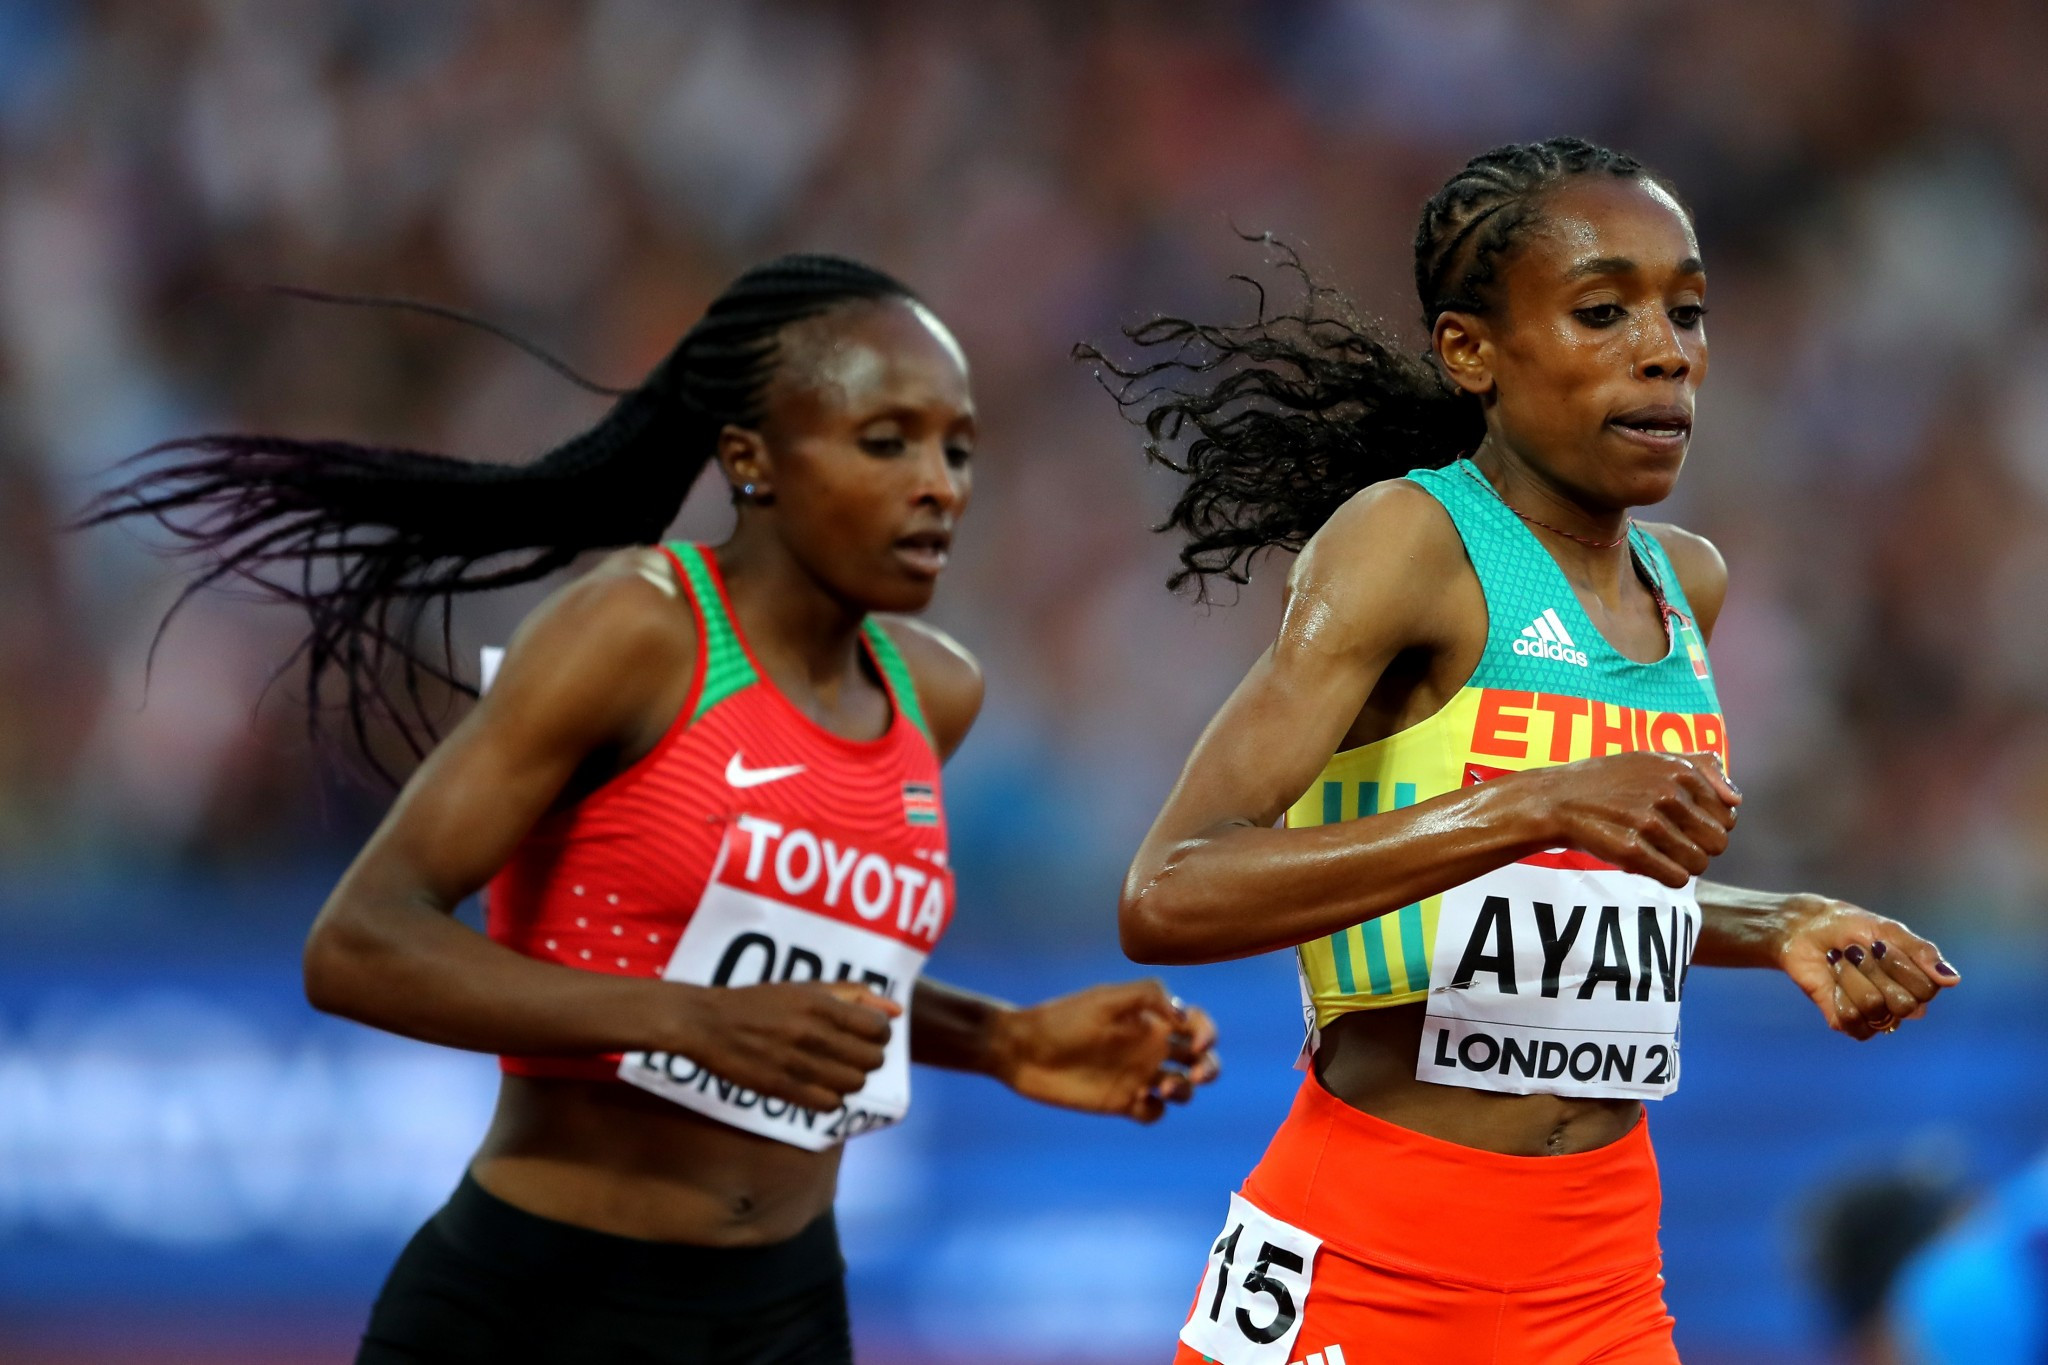 Top sporting stars from across Africa could be honoured in the award ceremony ©Getty Images